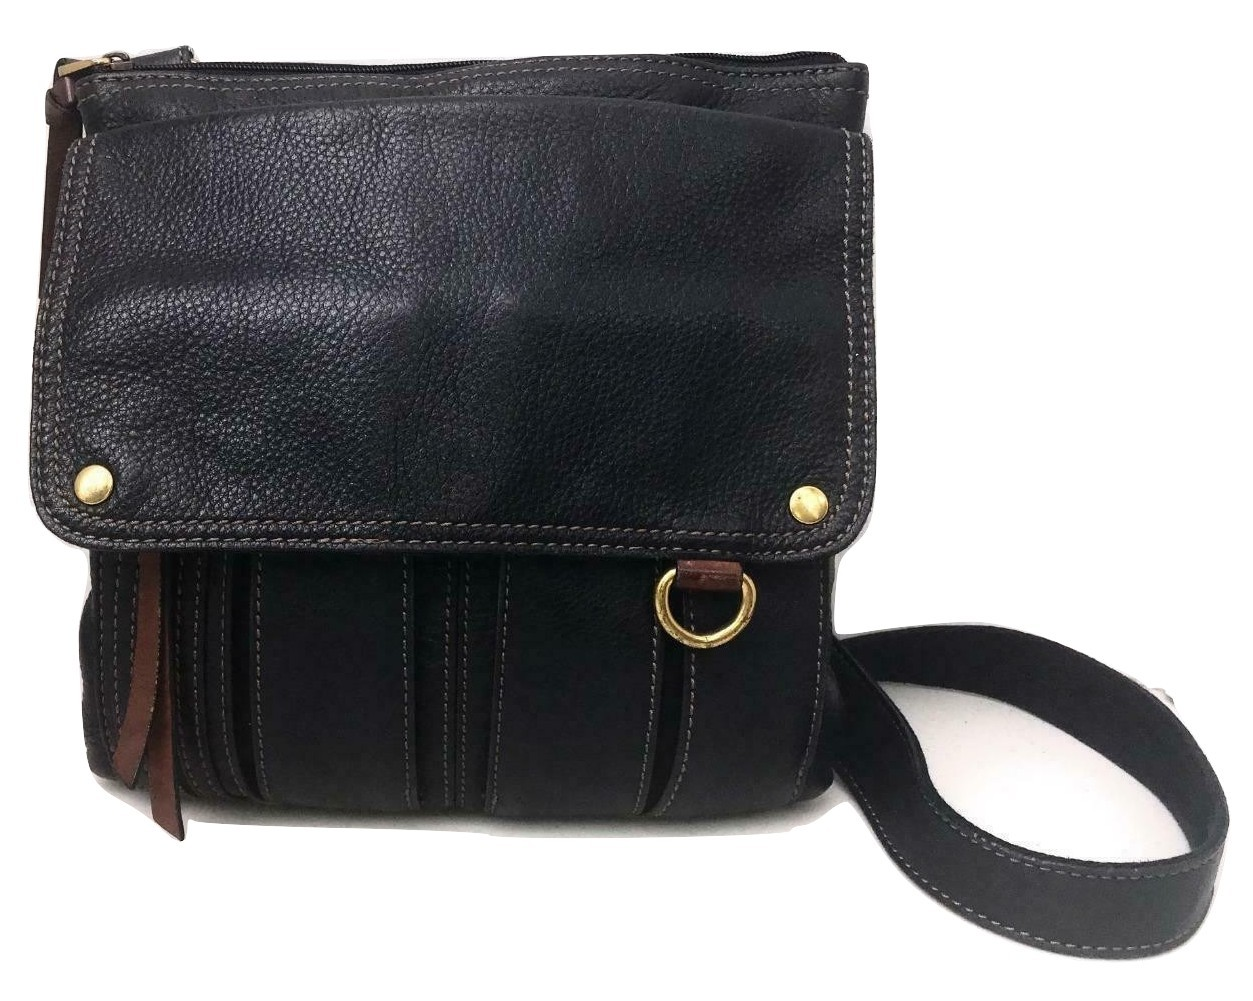 011e7da7ea Fossil ~ Morgan Traveler Crossbody Leather Shoulder Bag ~ Organizer Pocket  Back - £37.63 GBP